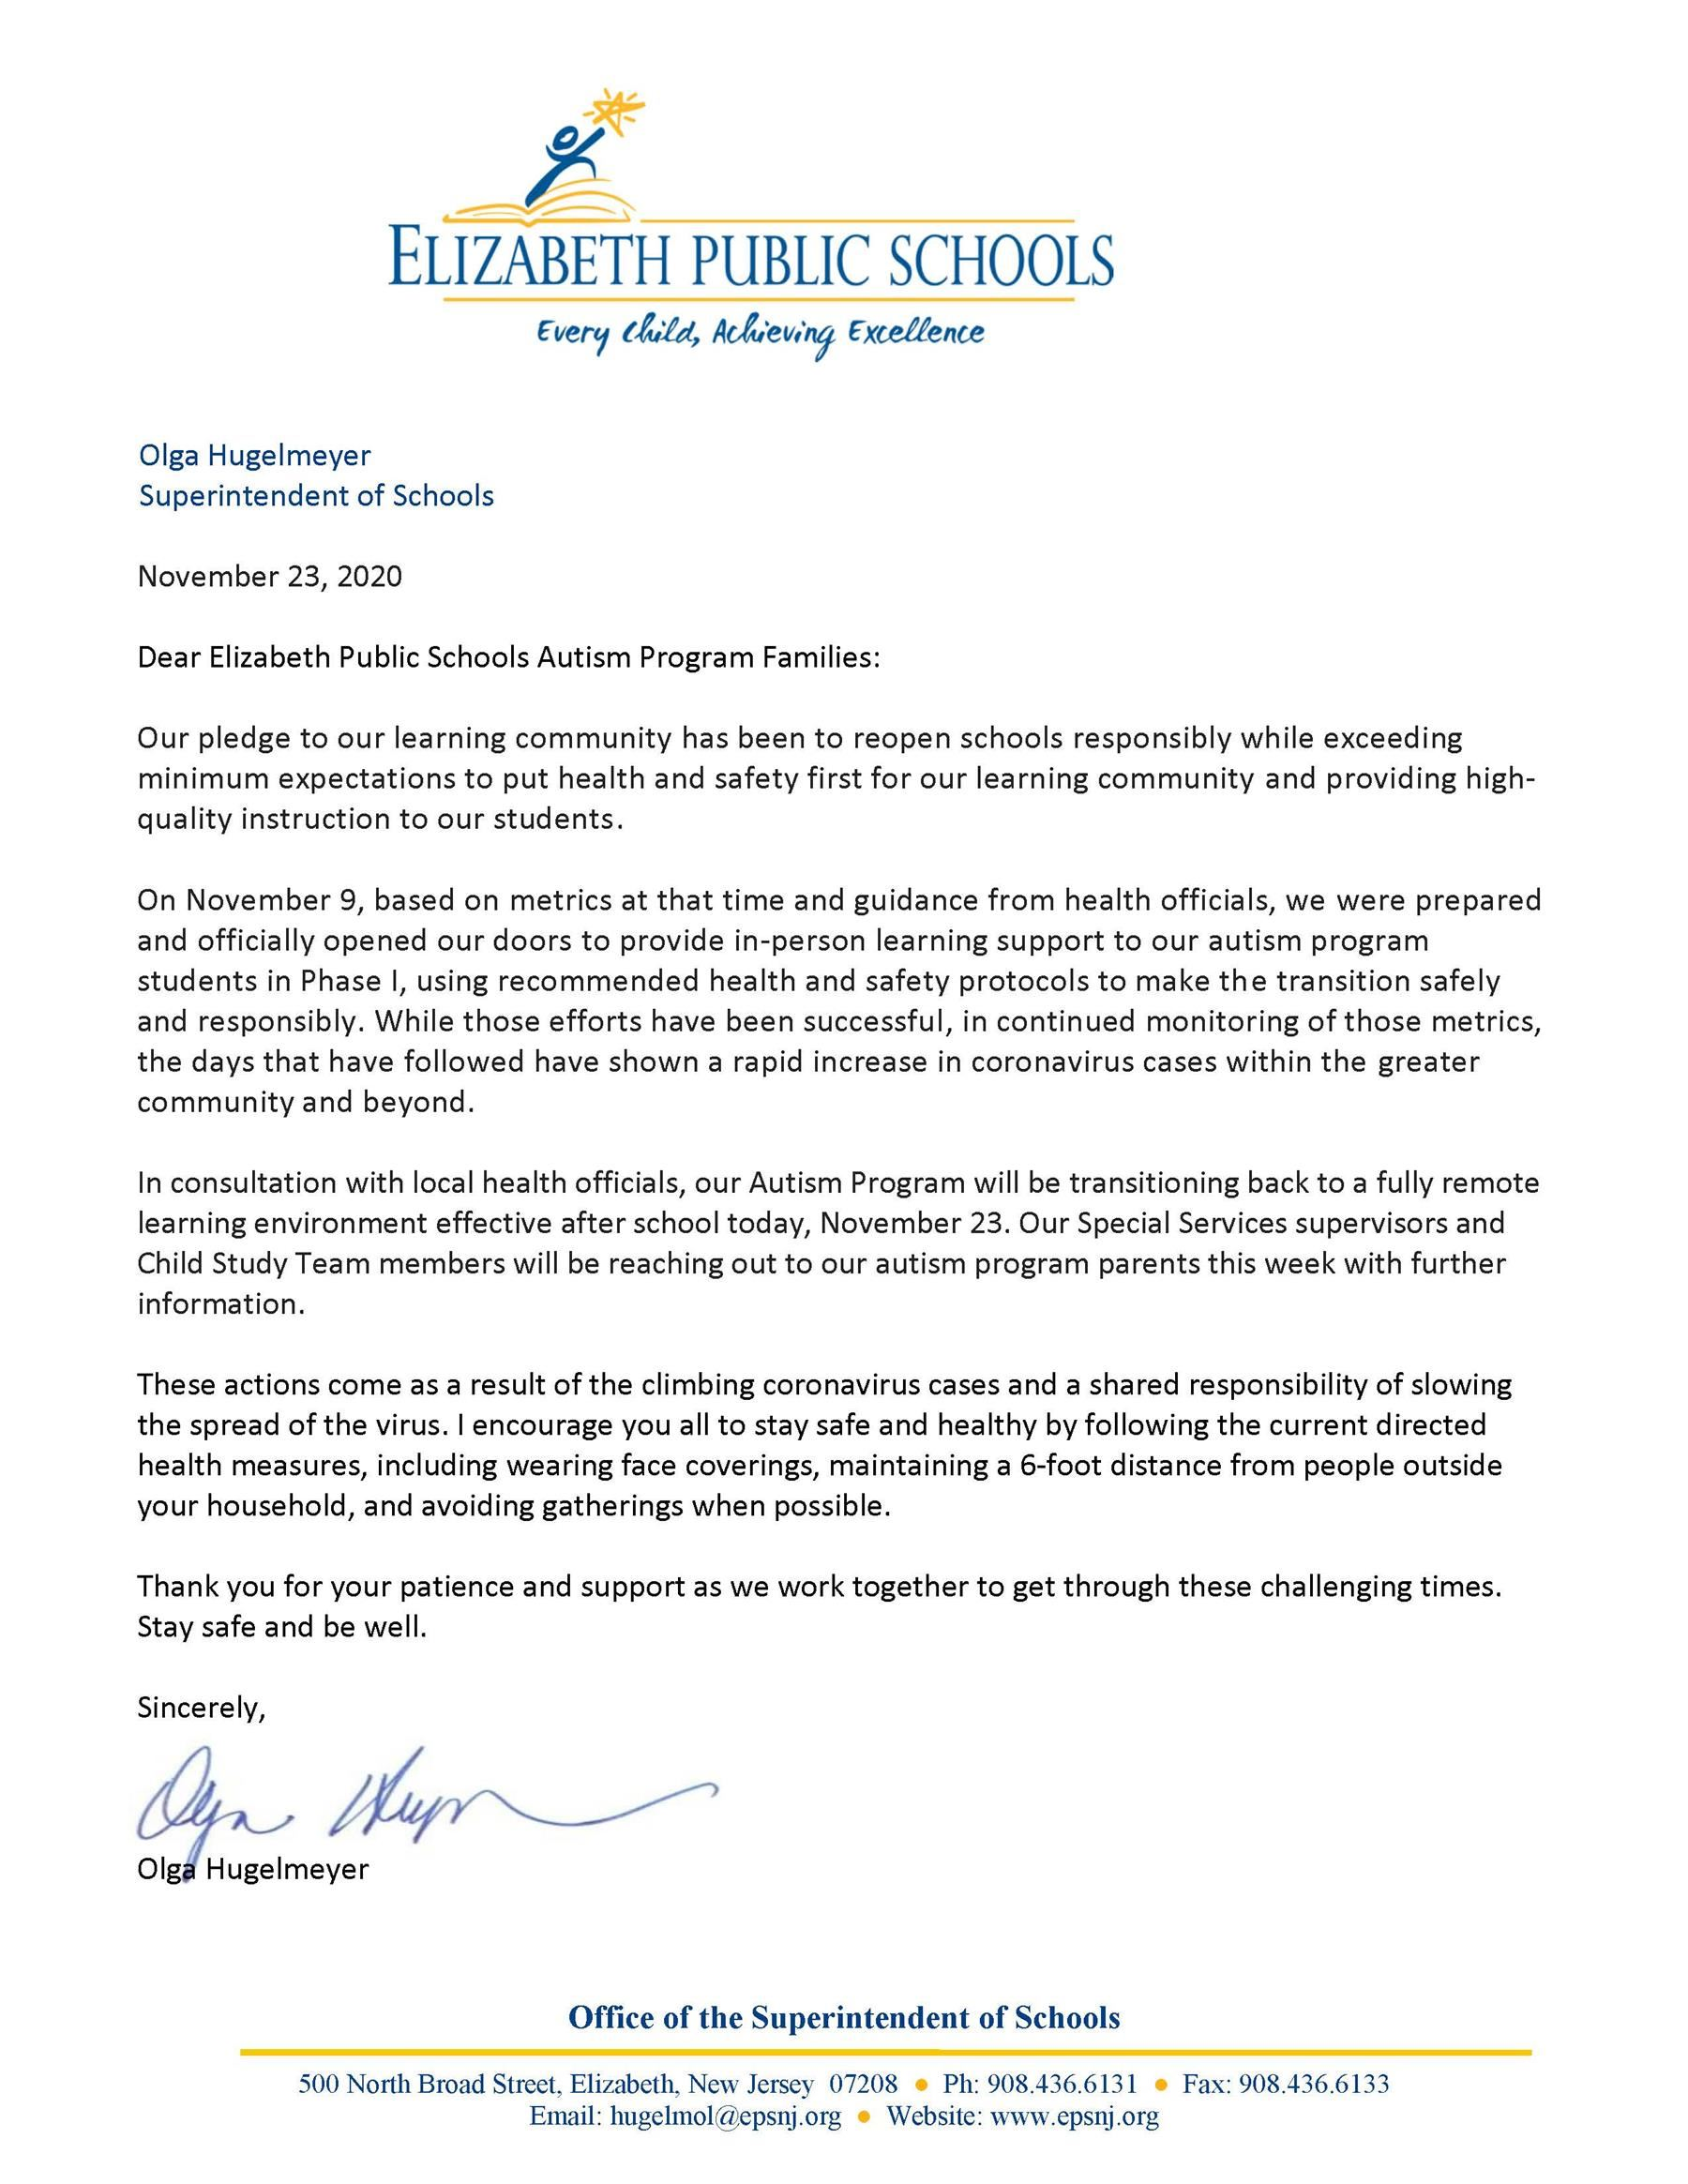 Letter to EPS Autism Program Families- EPS Autism Program Returns to All Remote Instruction- 11-23-20